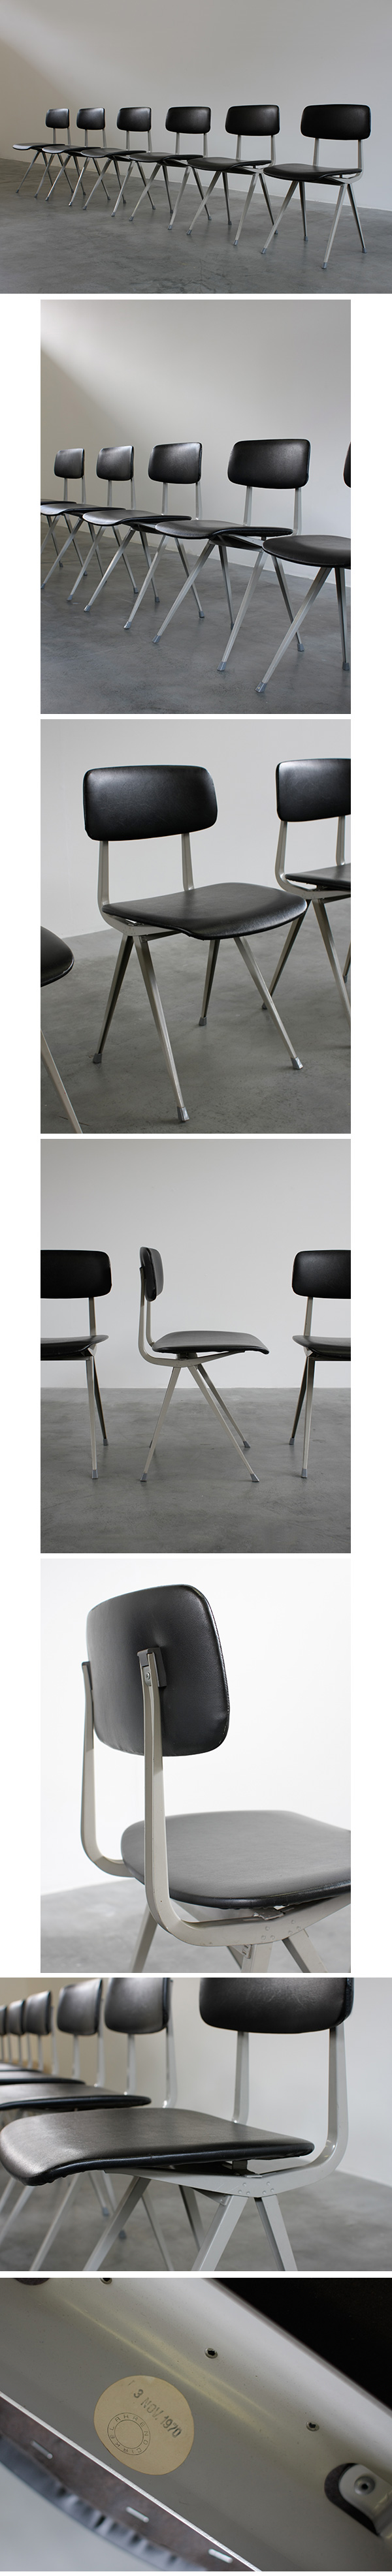 Friso Kramer, chairs, dated, 1970, black, vinyl, seats, 1950s